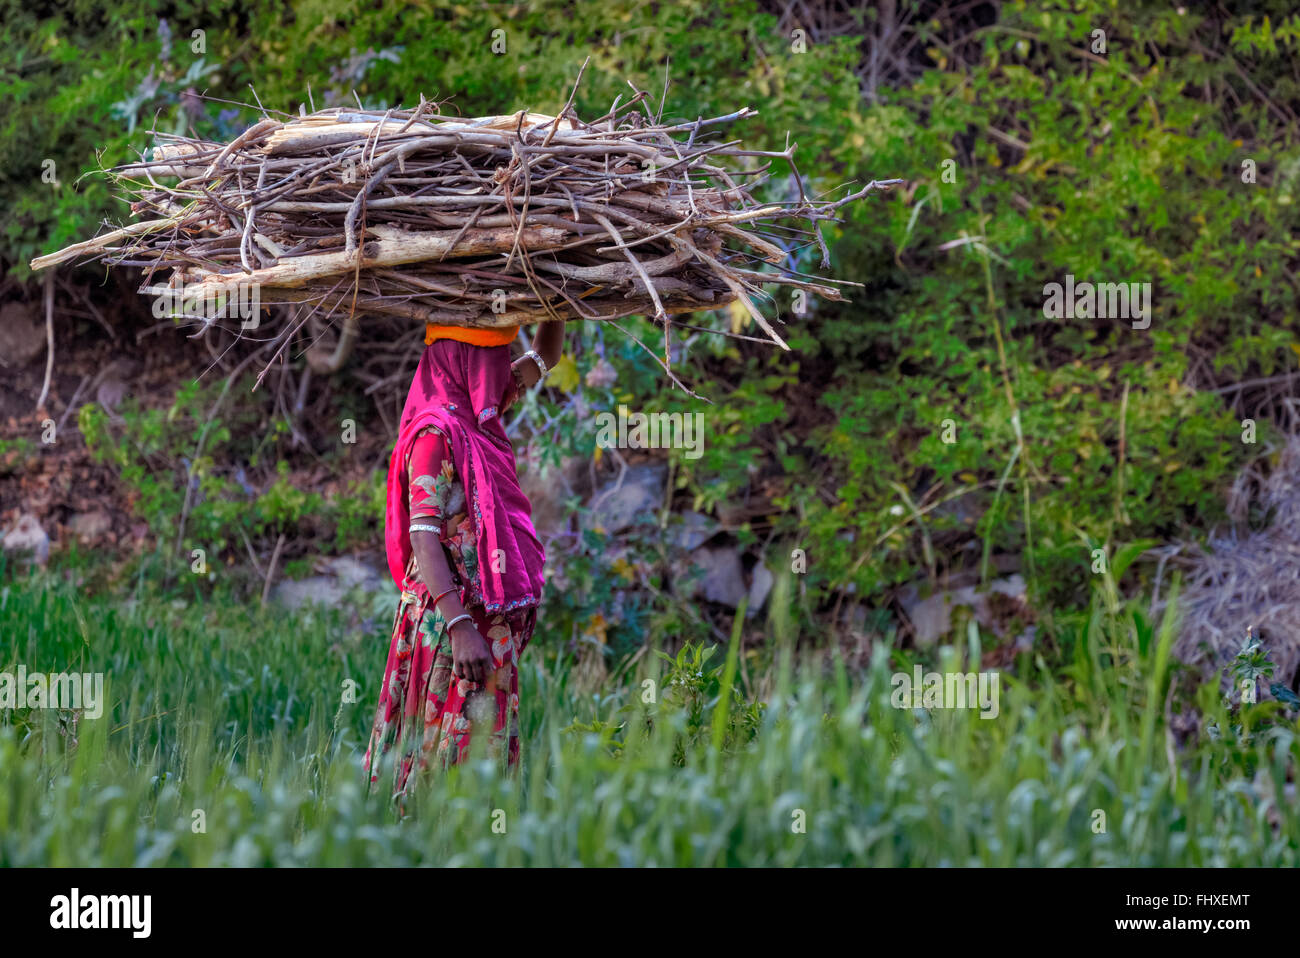 woman carrying firewood on her head in rural Rajasthan, India - Stock Image